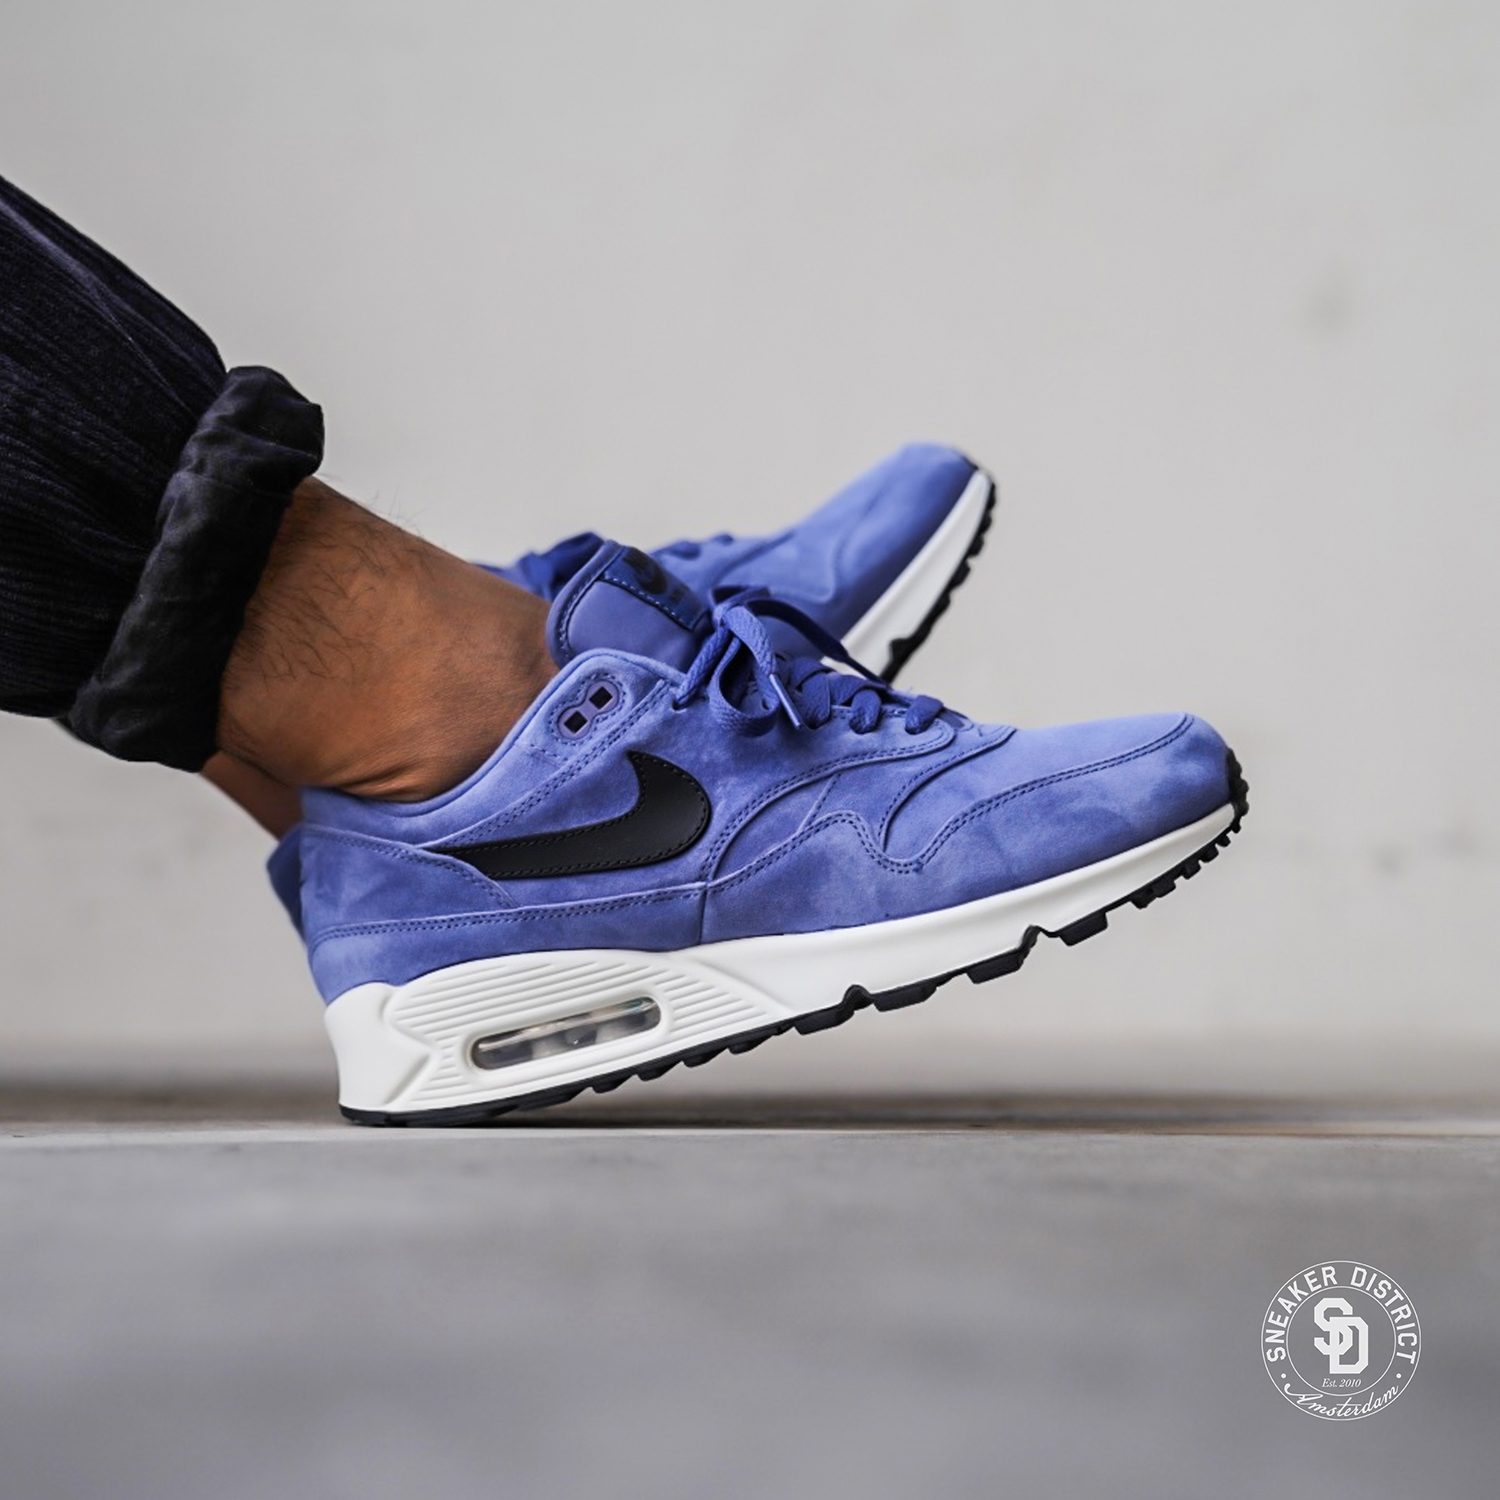 nike AIR MAX 901 PURPLE BASALTANTHRACITE SUMMIT WHITE bei